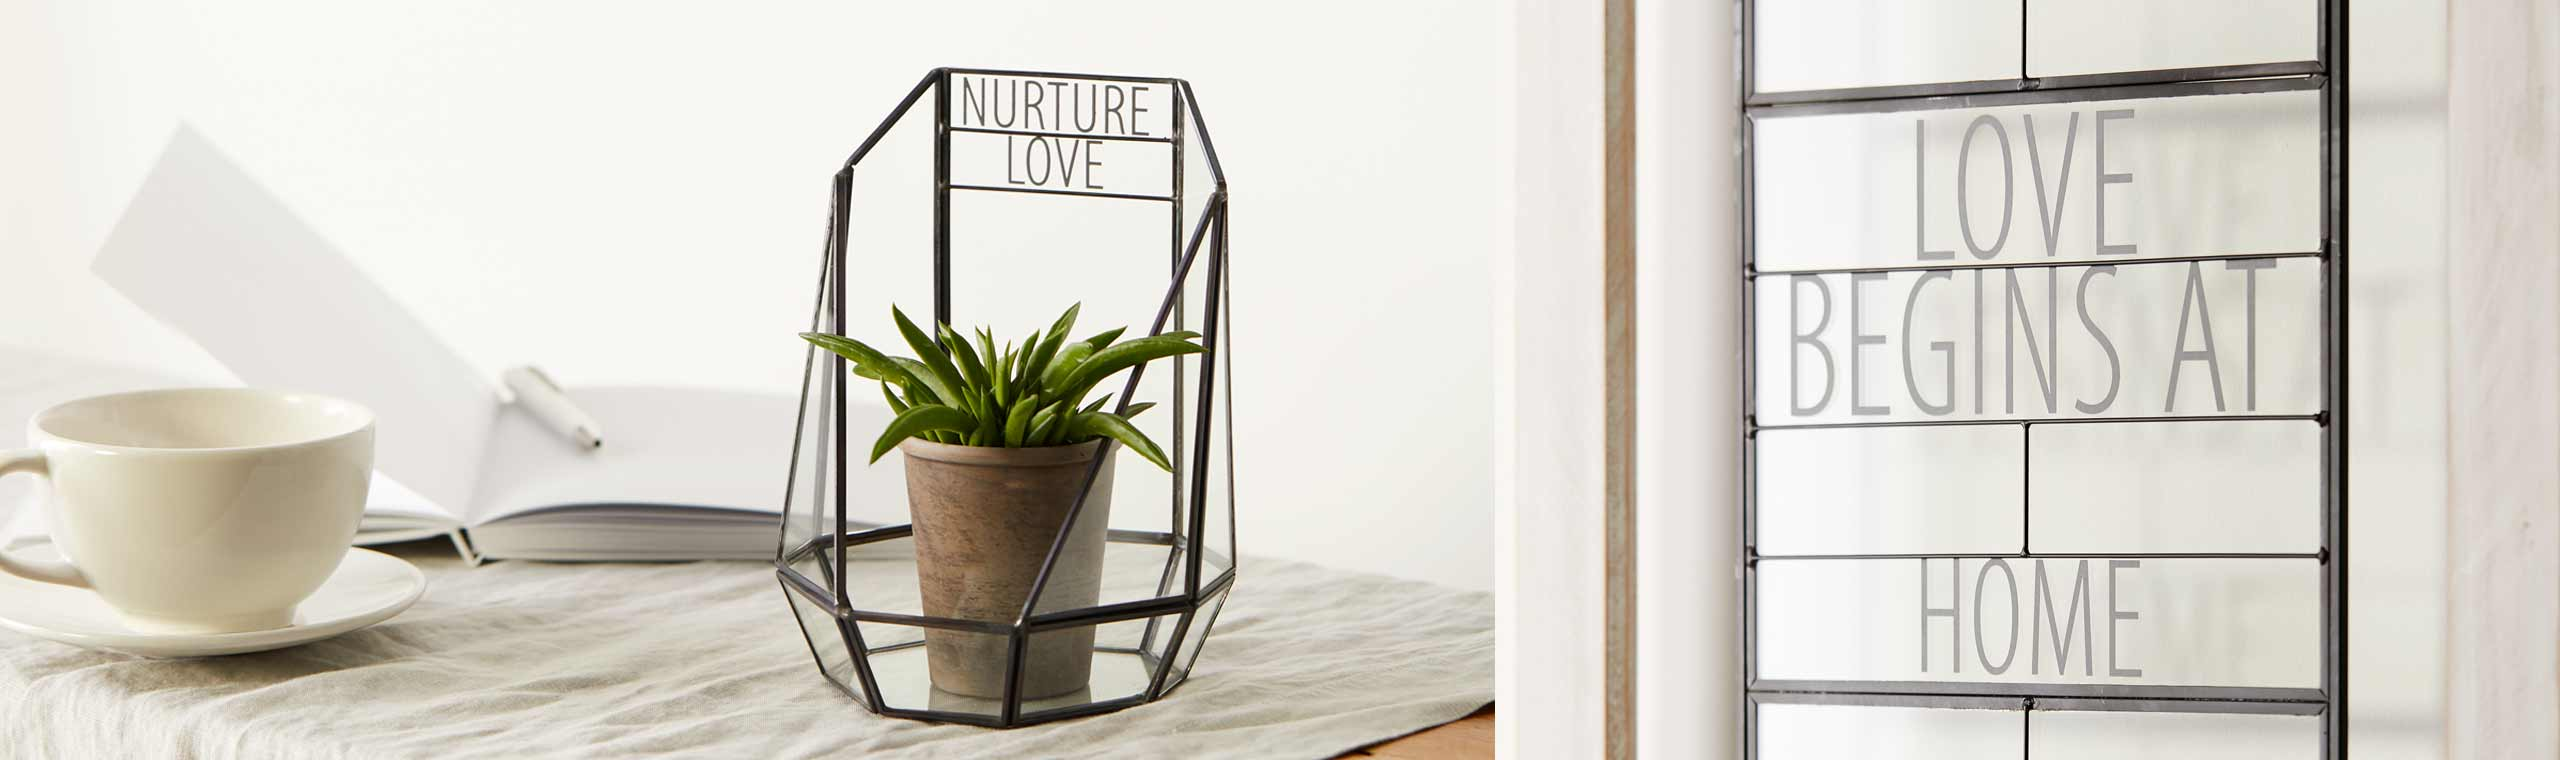 Glass and metal-edged terranium with the words Nurture Love and a frame with the words Love Begins at Home